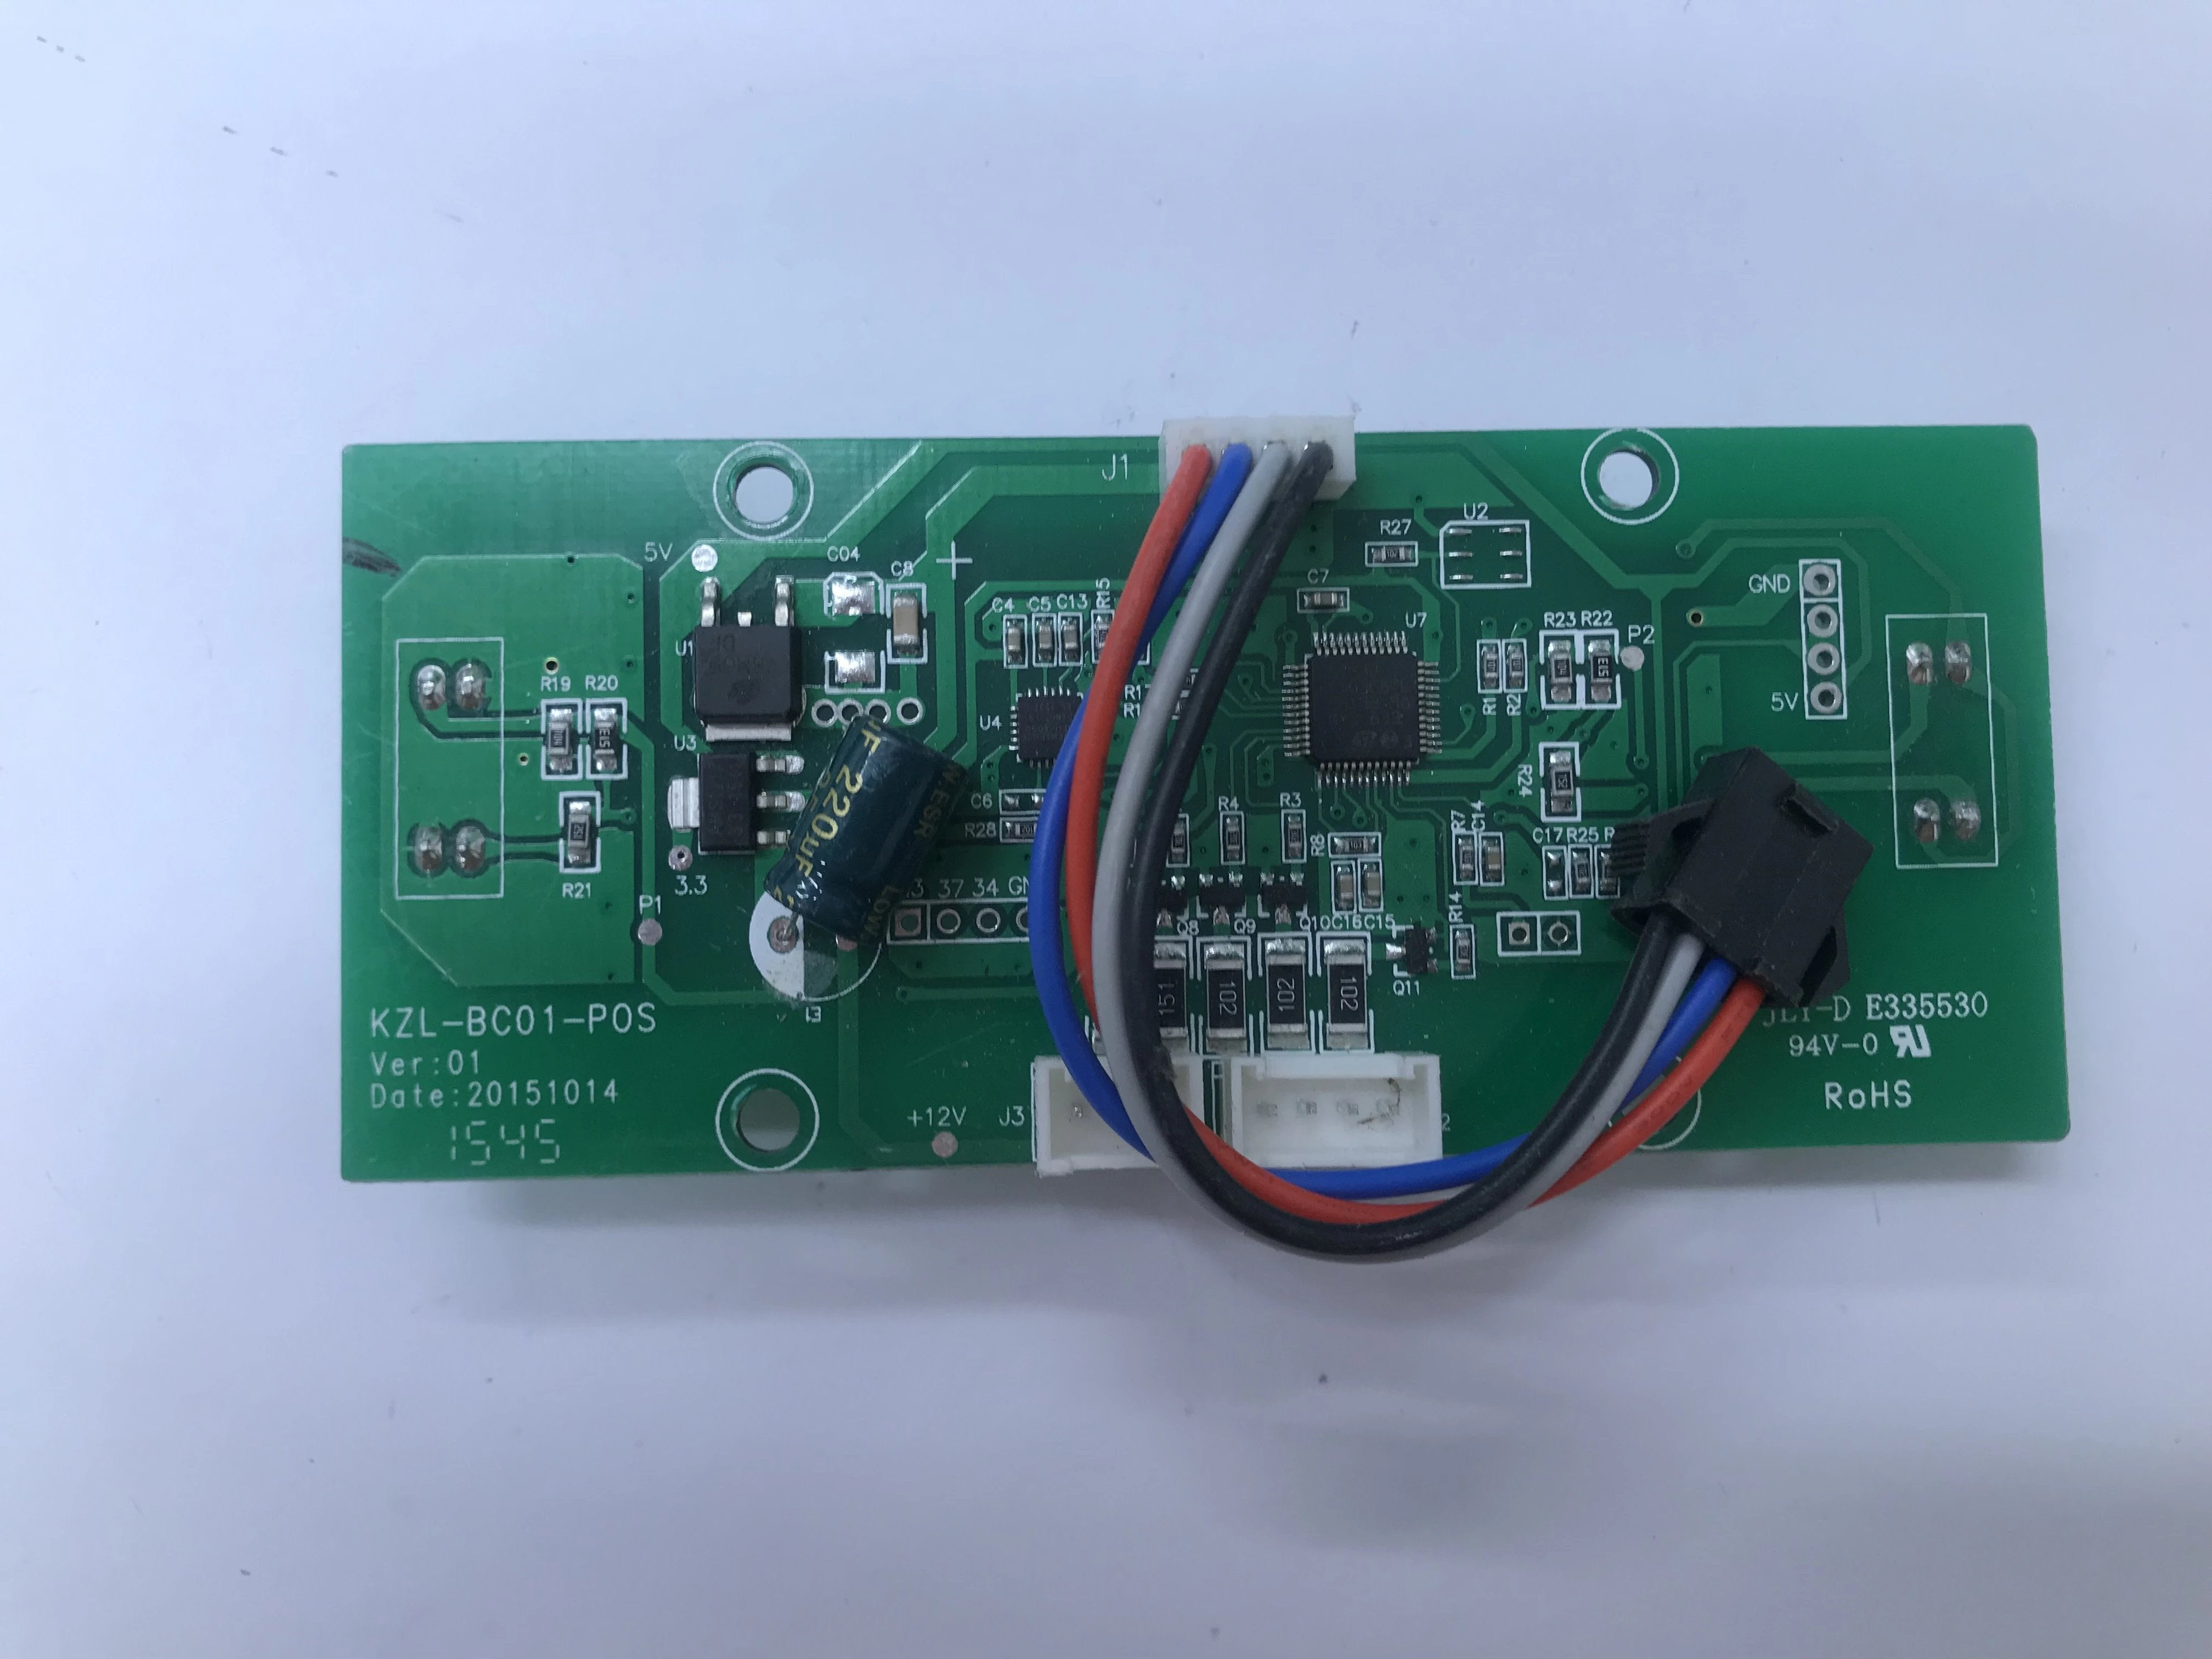 GYRO CIRCUIT BOARD (WIRED TYPE) - KZL-BC01-POS-V01 20151014